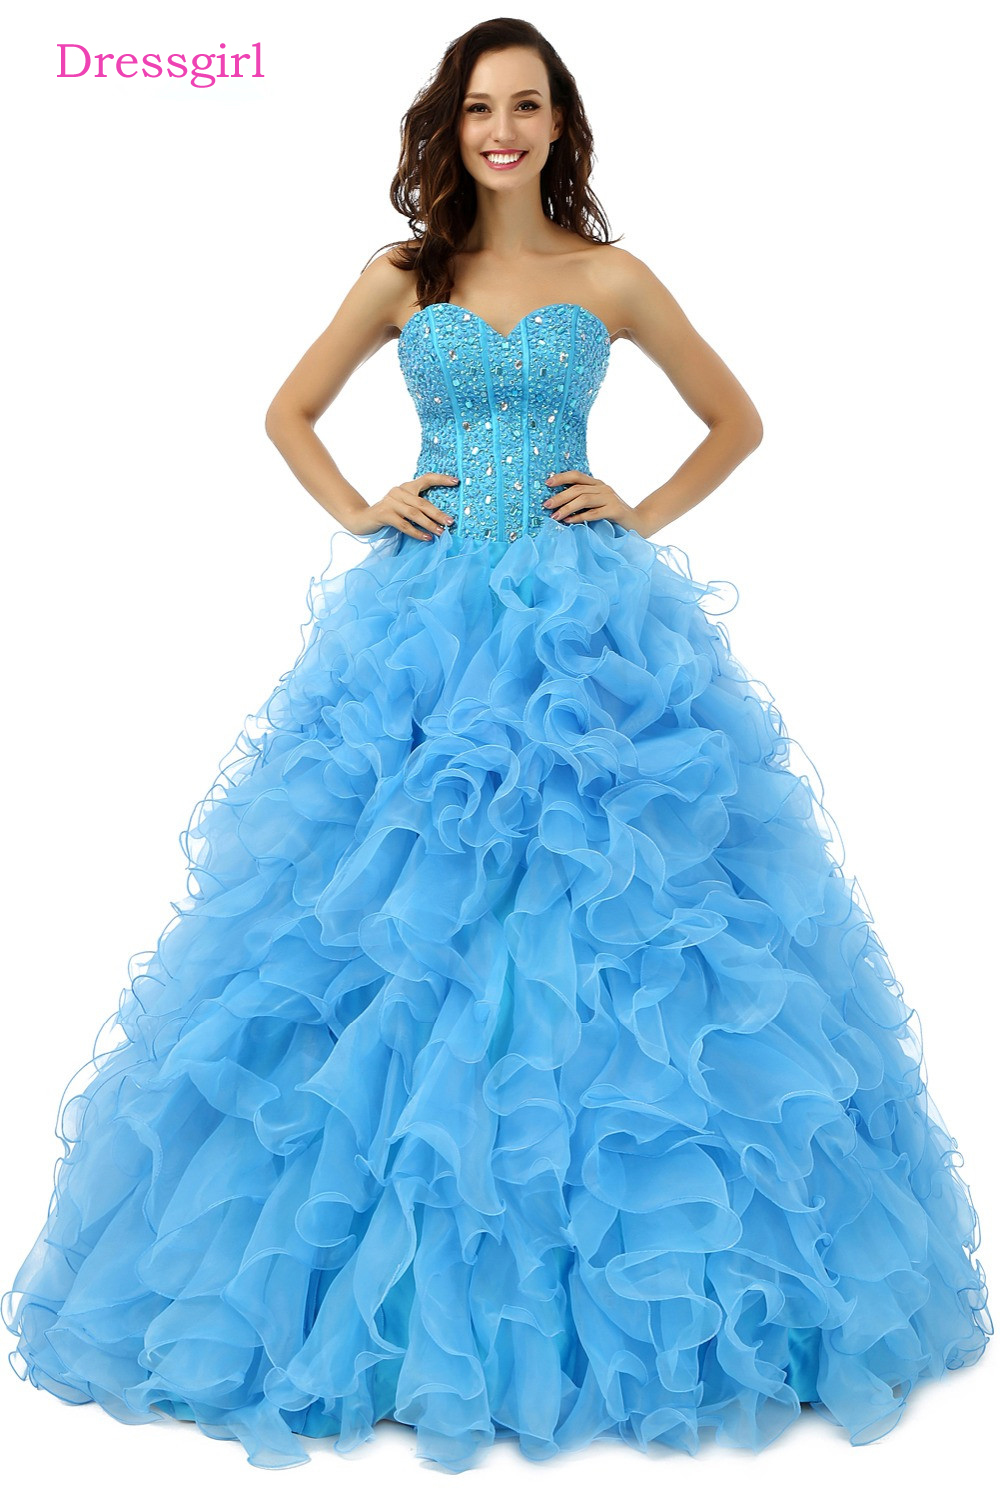 Hot 2019 Royal Blue Ball Gown Sweetheart Floor Length Organza Ruffles Beaded Crystals Cheap Coral Quinceanera Dresses